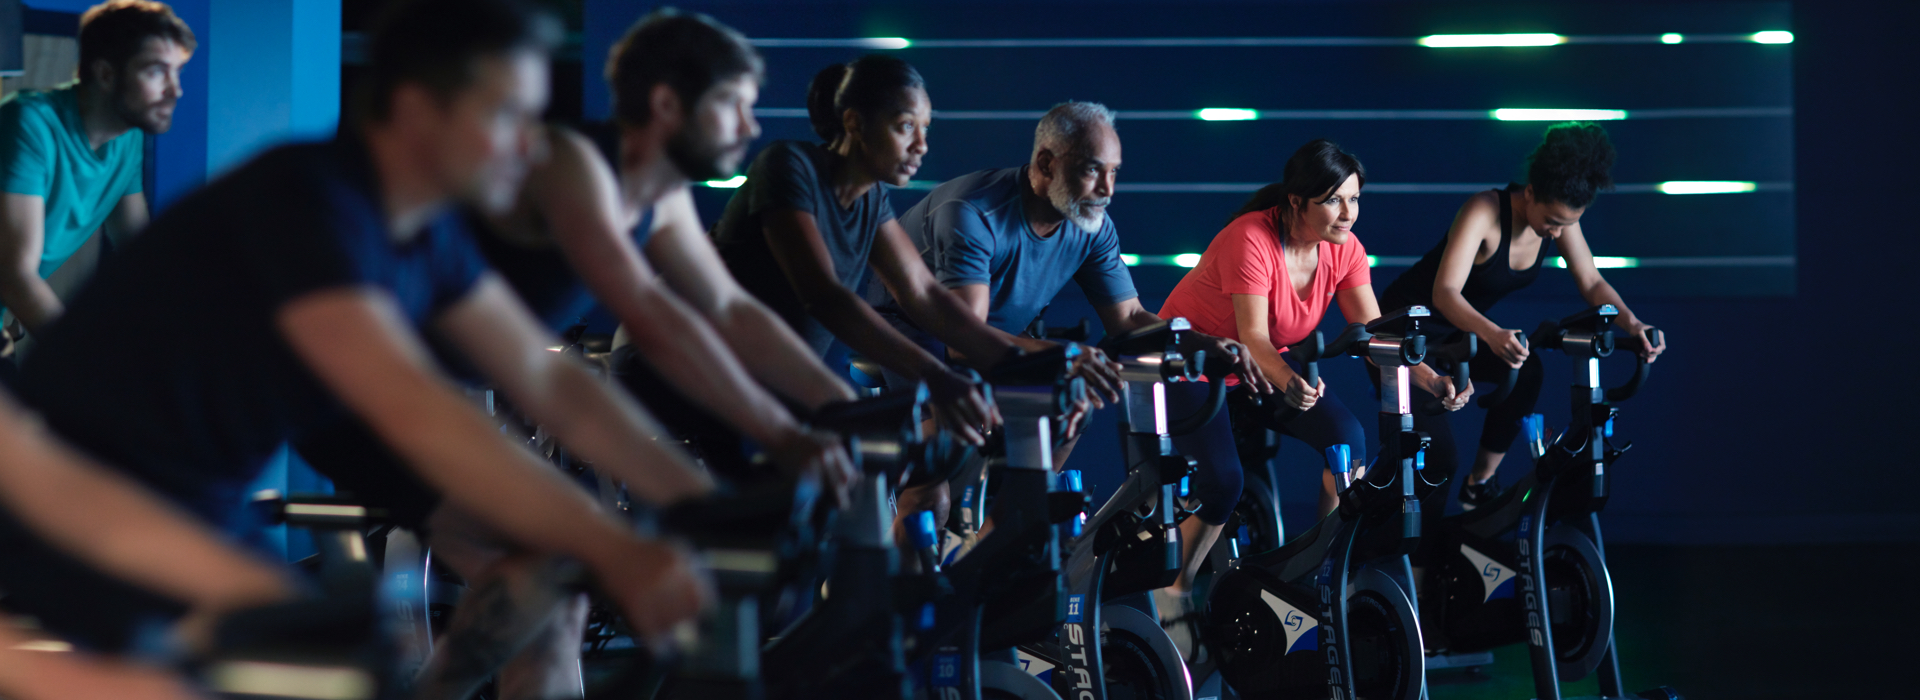 A group cycling class with Stages bikes